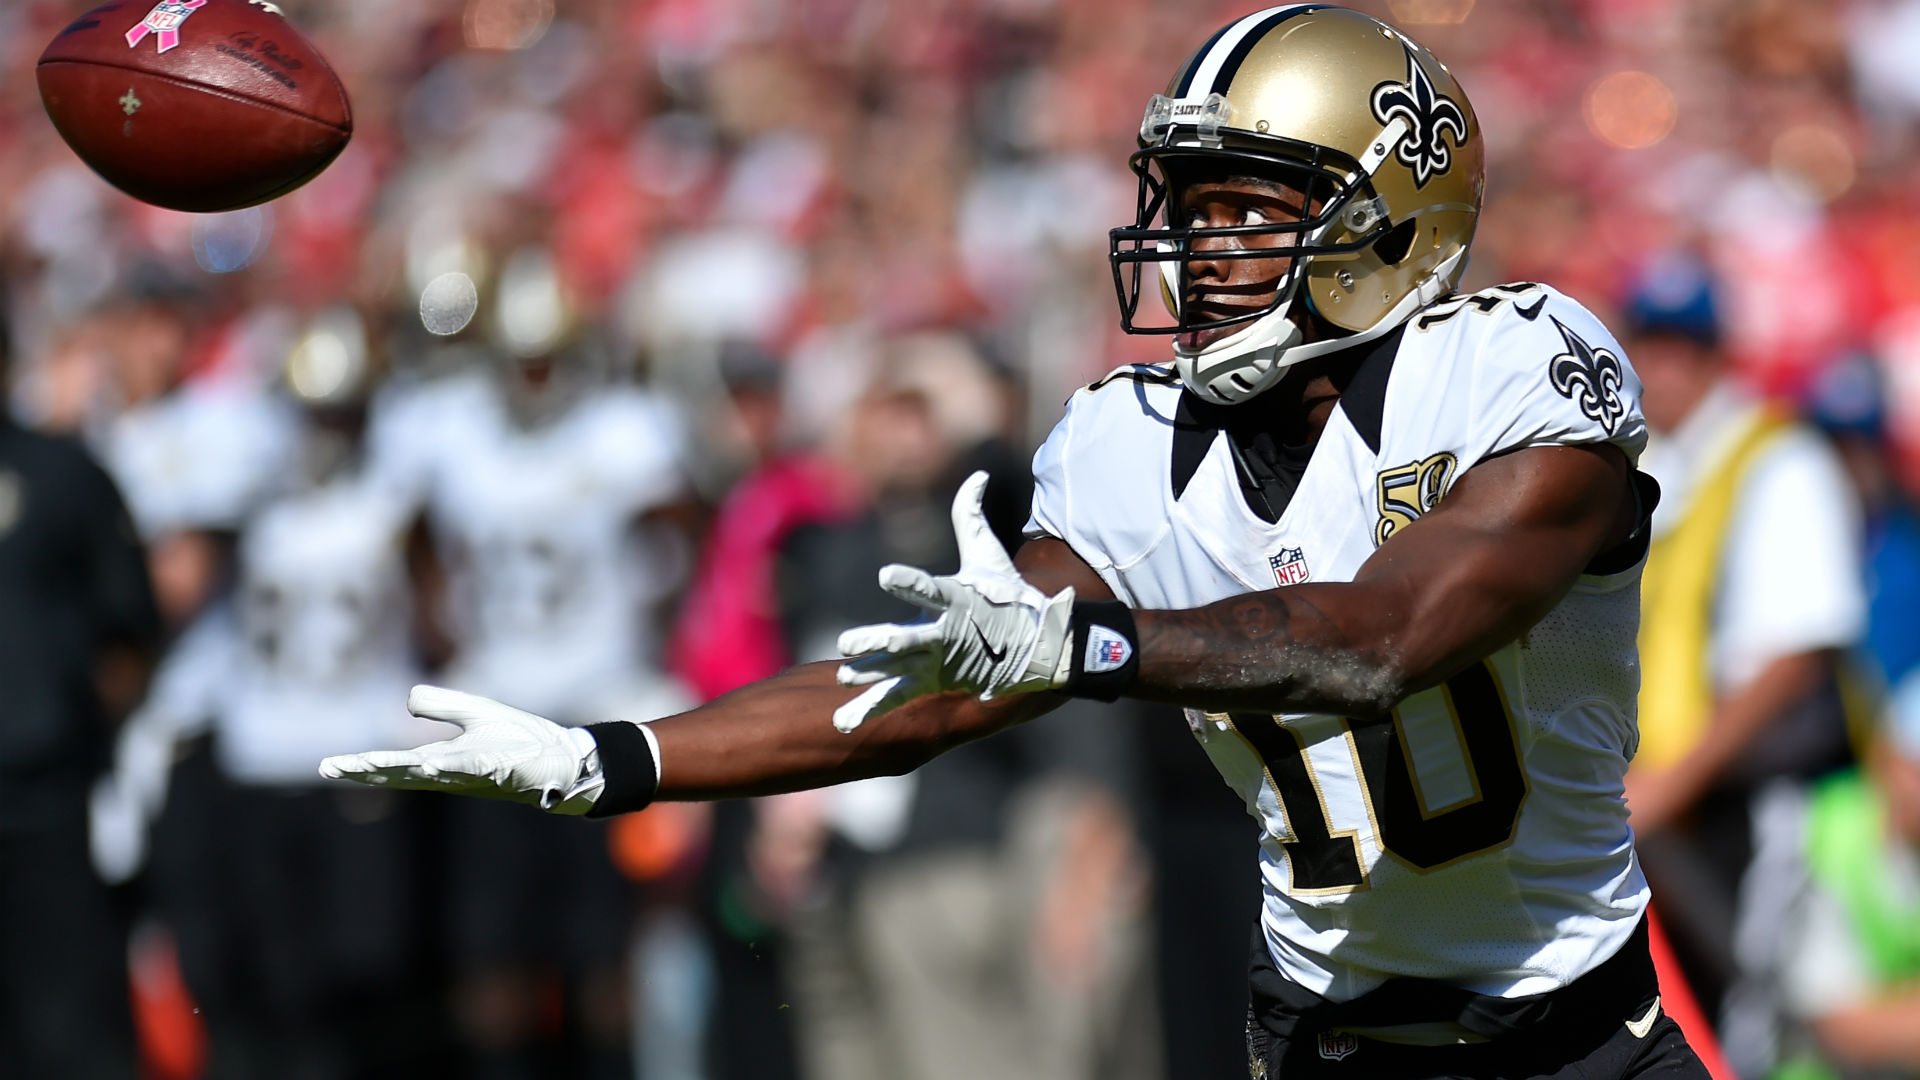 Patriots Aquire Receiver Brandin Cooks From Saints for Top Draft Pick